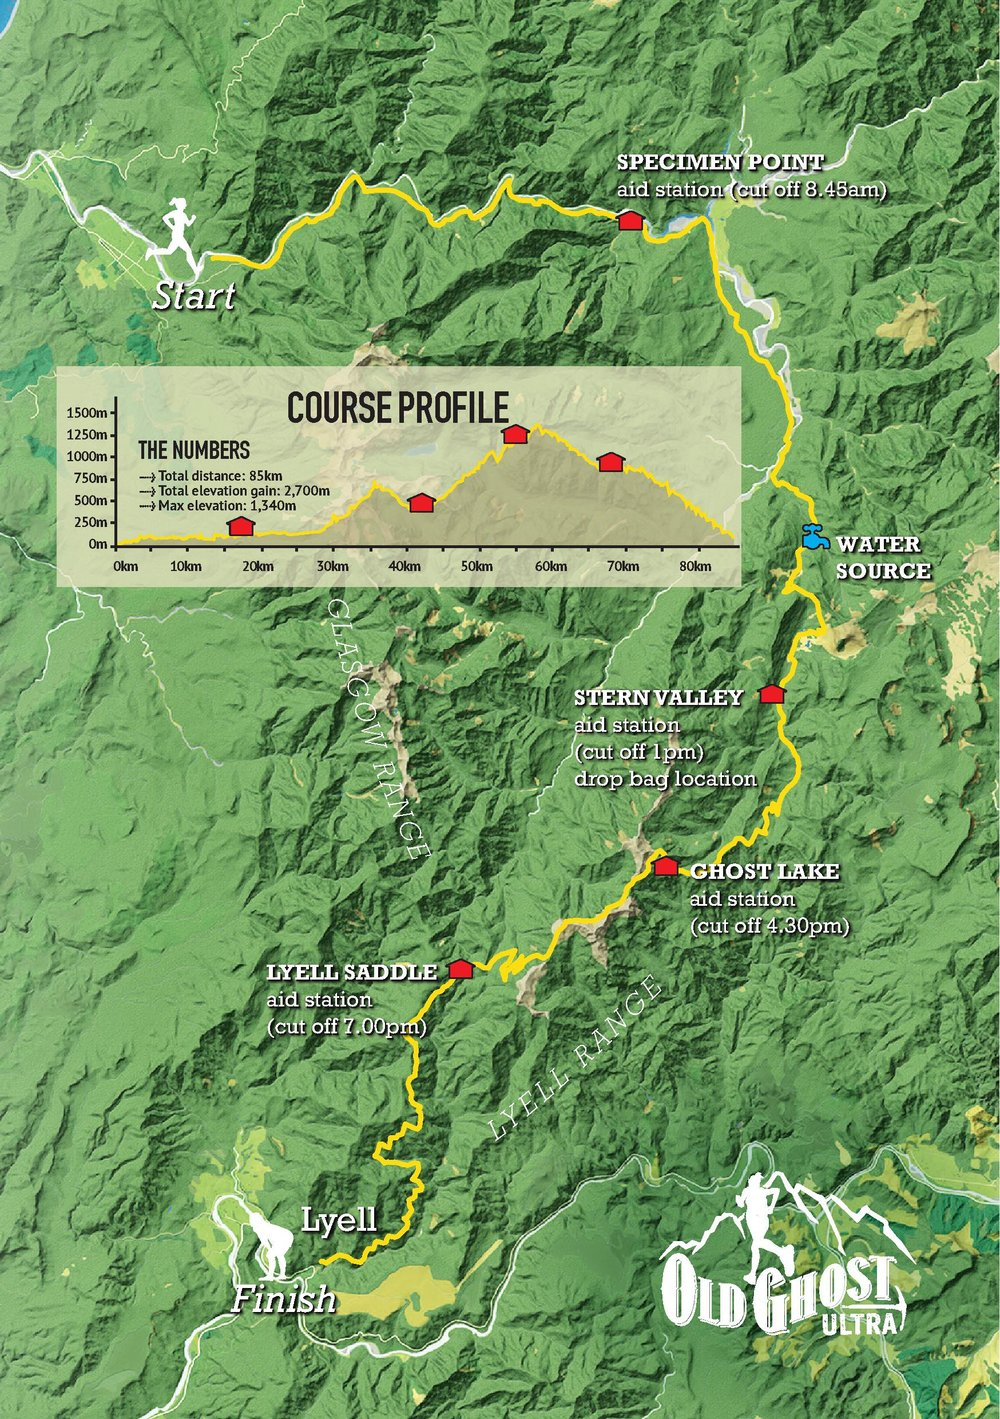 180117 - Old Ghost Ultra Course Map - Portrait.jpg